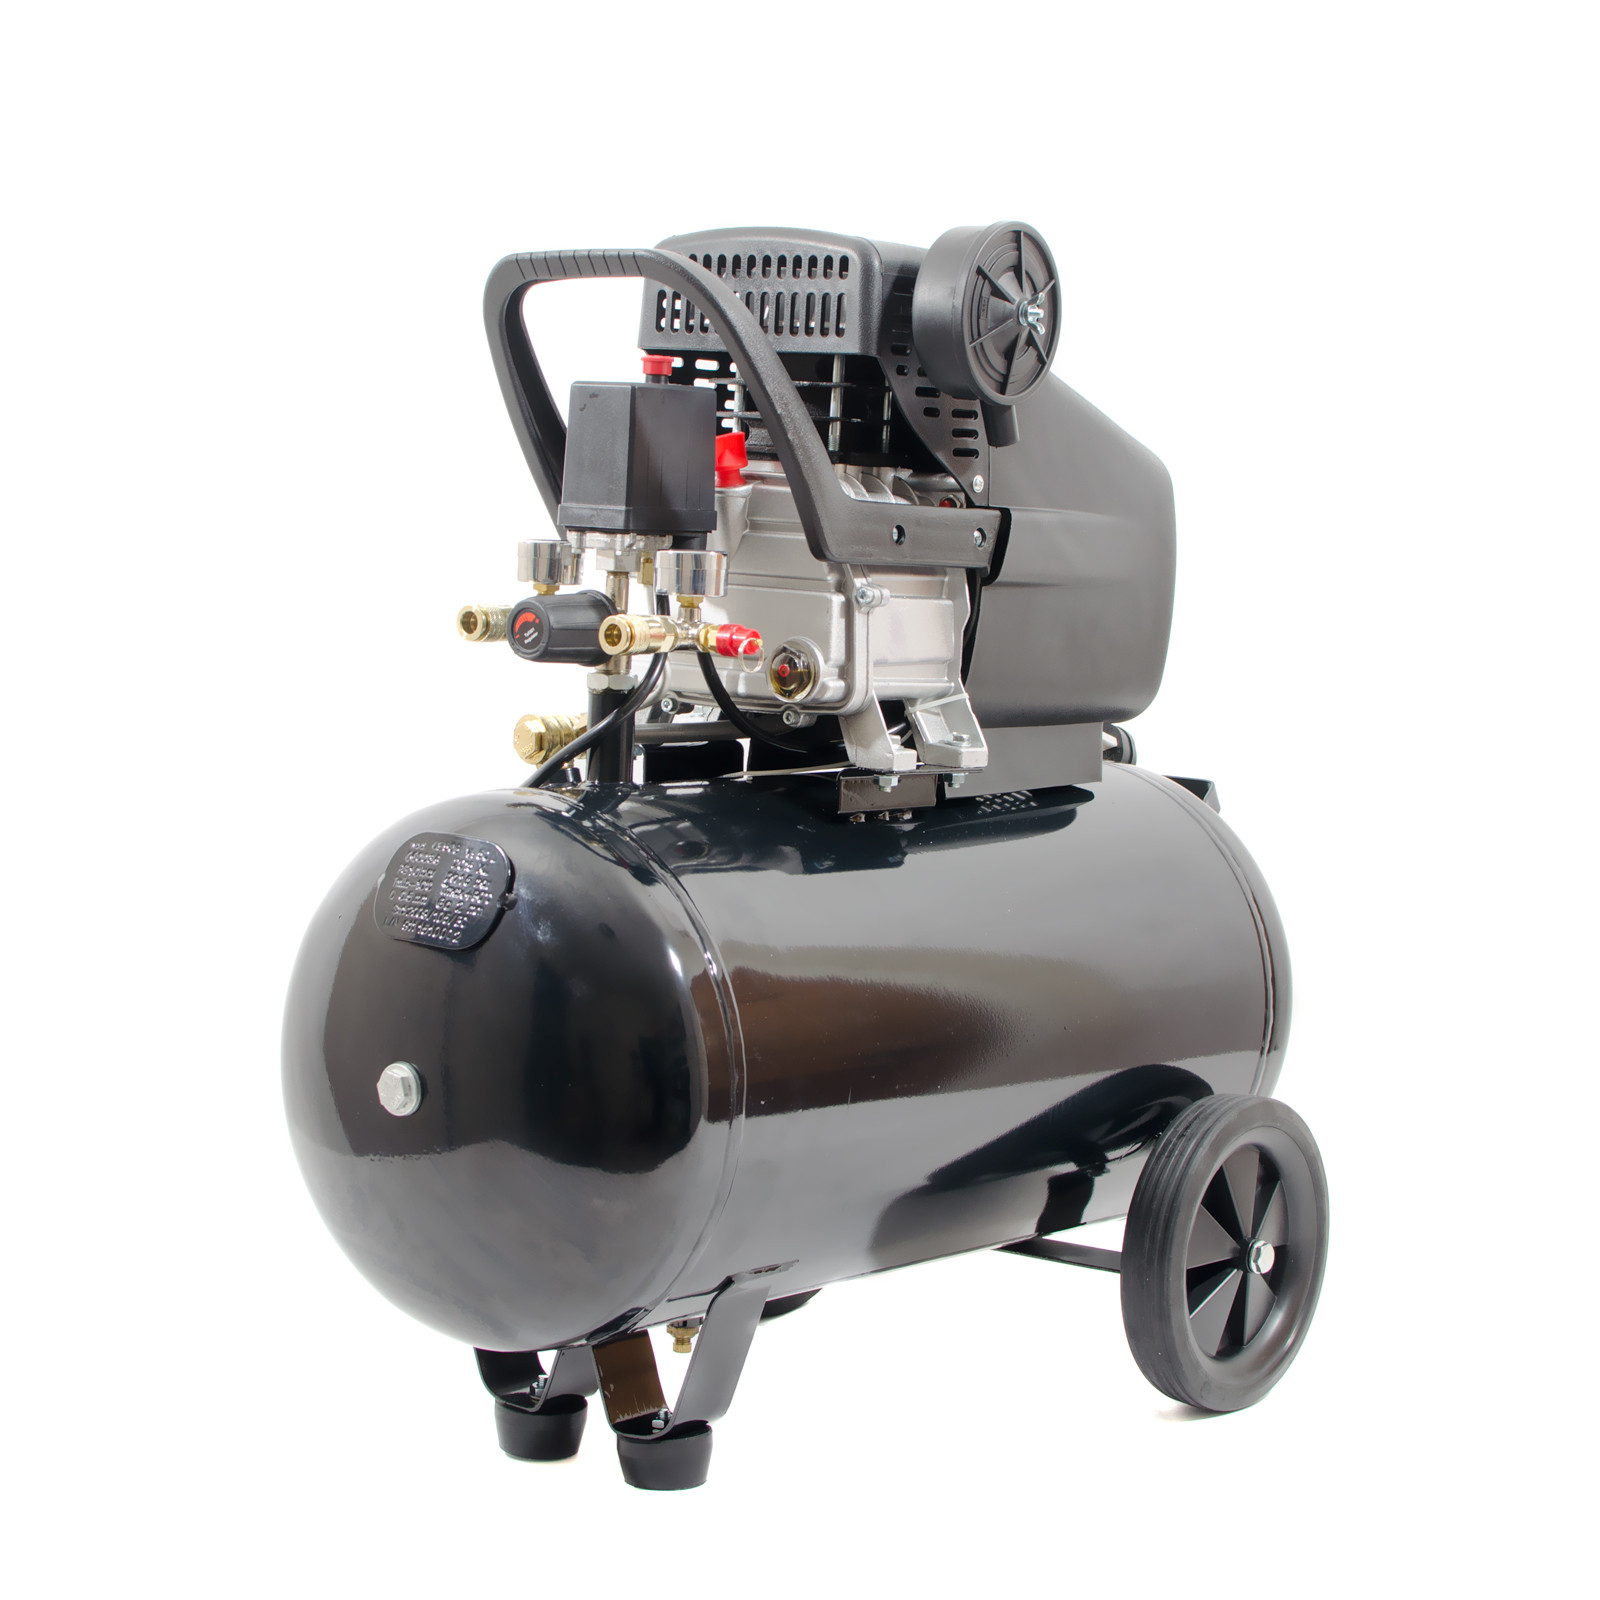 50 Litre Air Compressor 9 6 Cfm 2 5 Hp 50l In Air